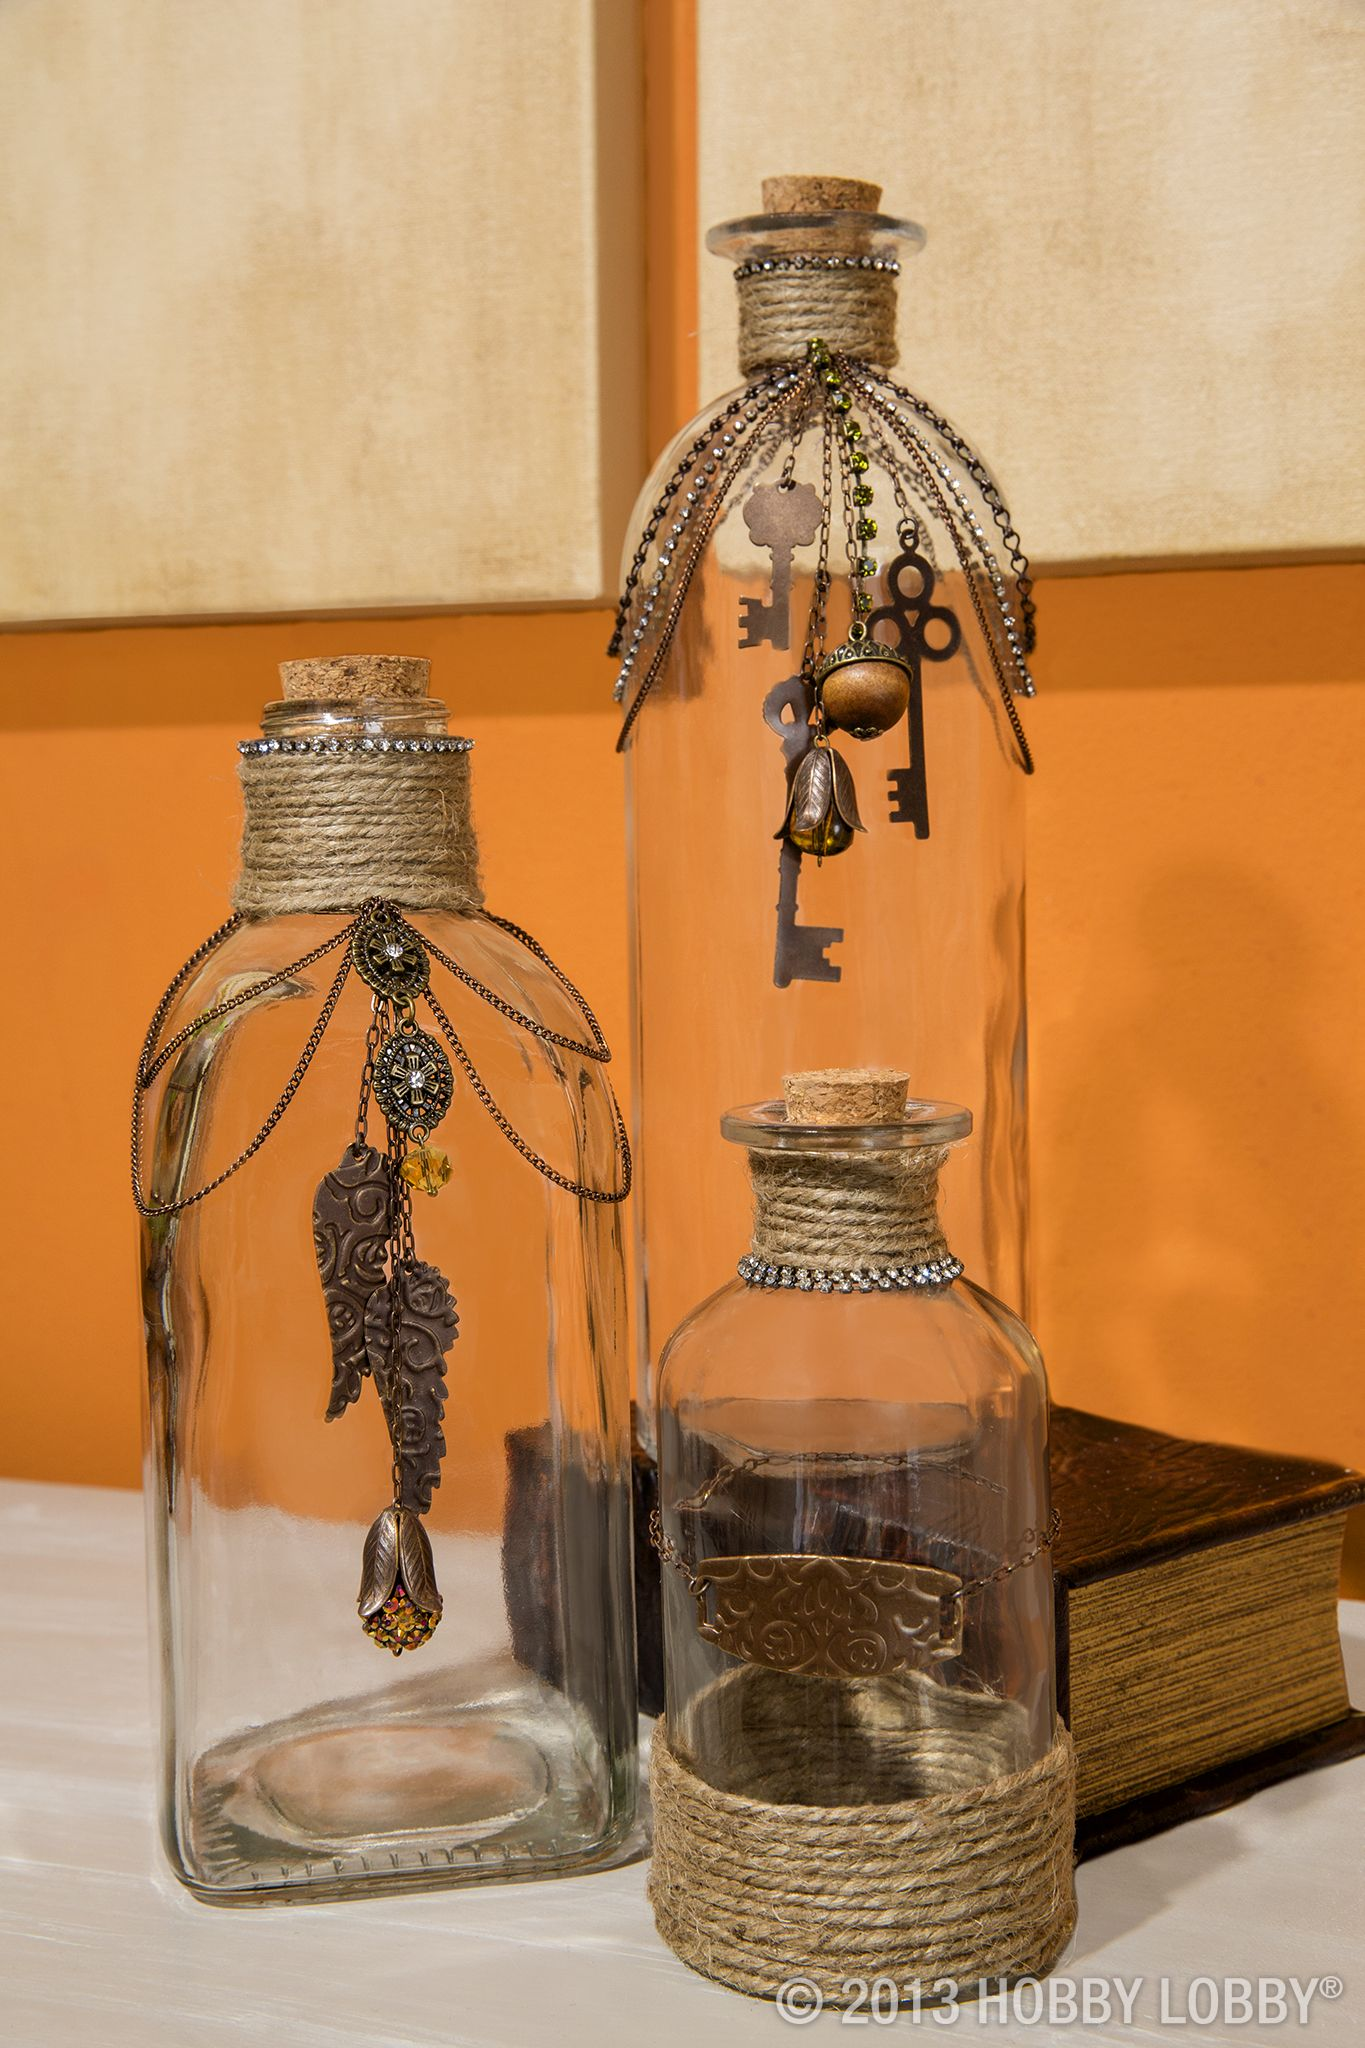 Glass Bottles Decoration Upcycle Glass Bottles With Twine And Jewelry Accents For An Easy